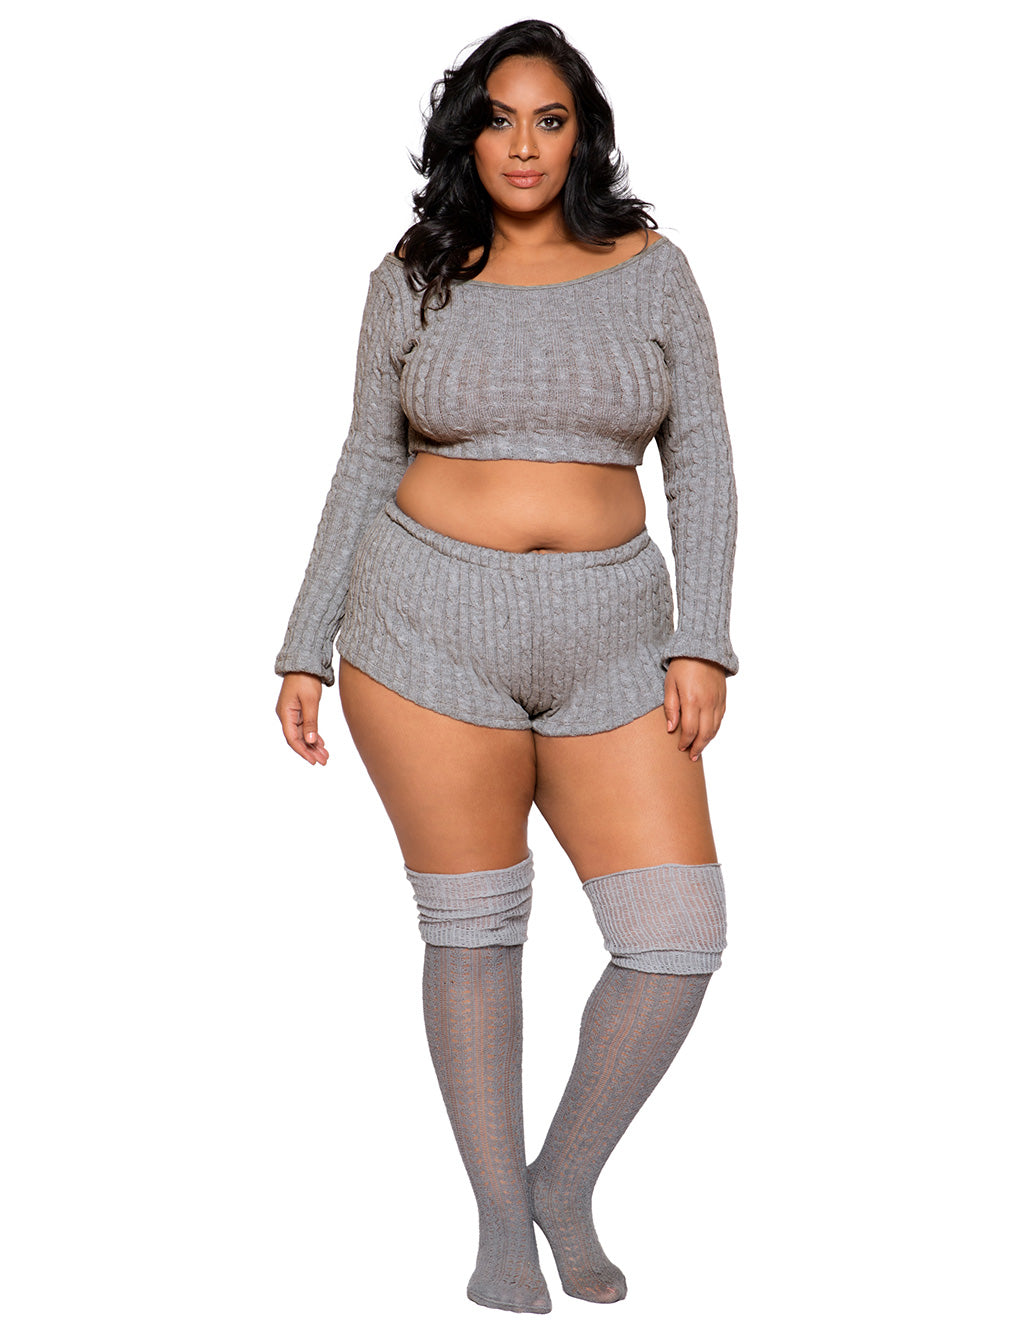 Cozy And Comfy Pajama Short Set By Roma Costume Plus Size Front